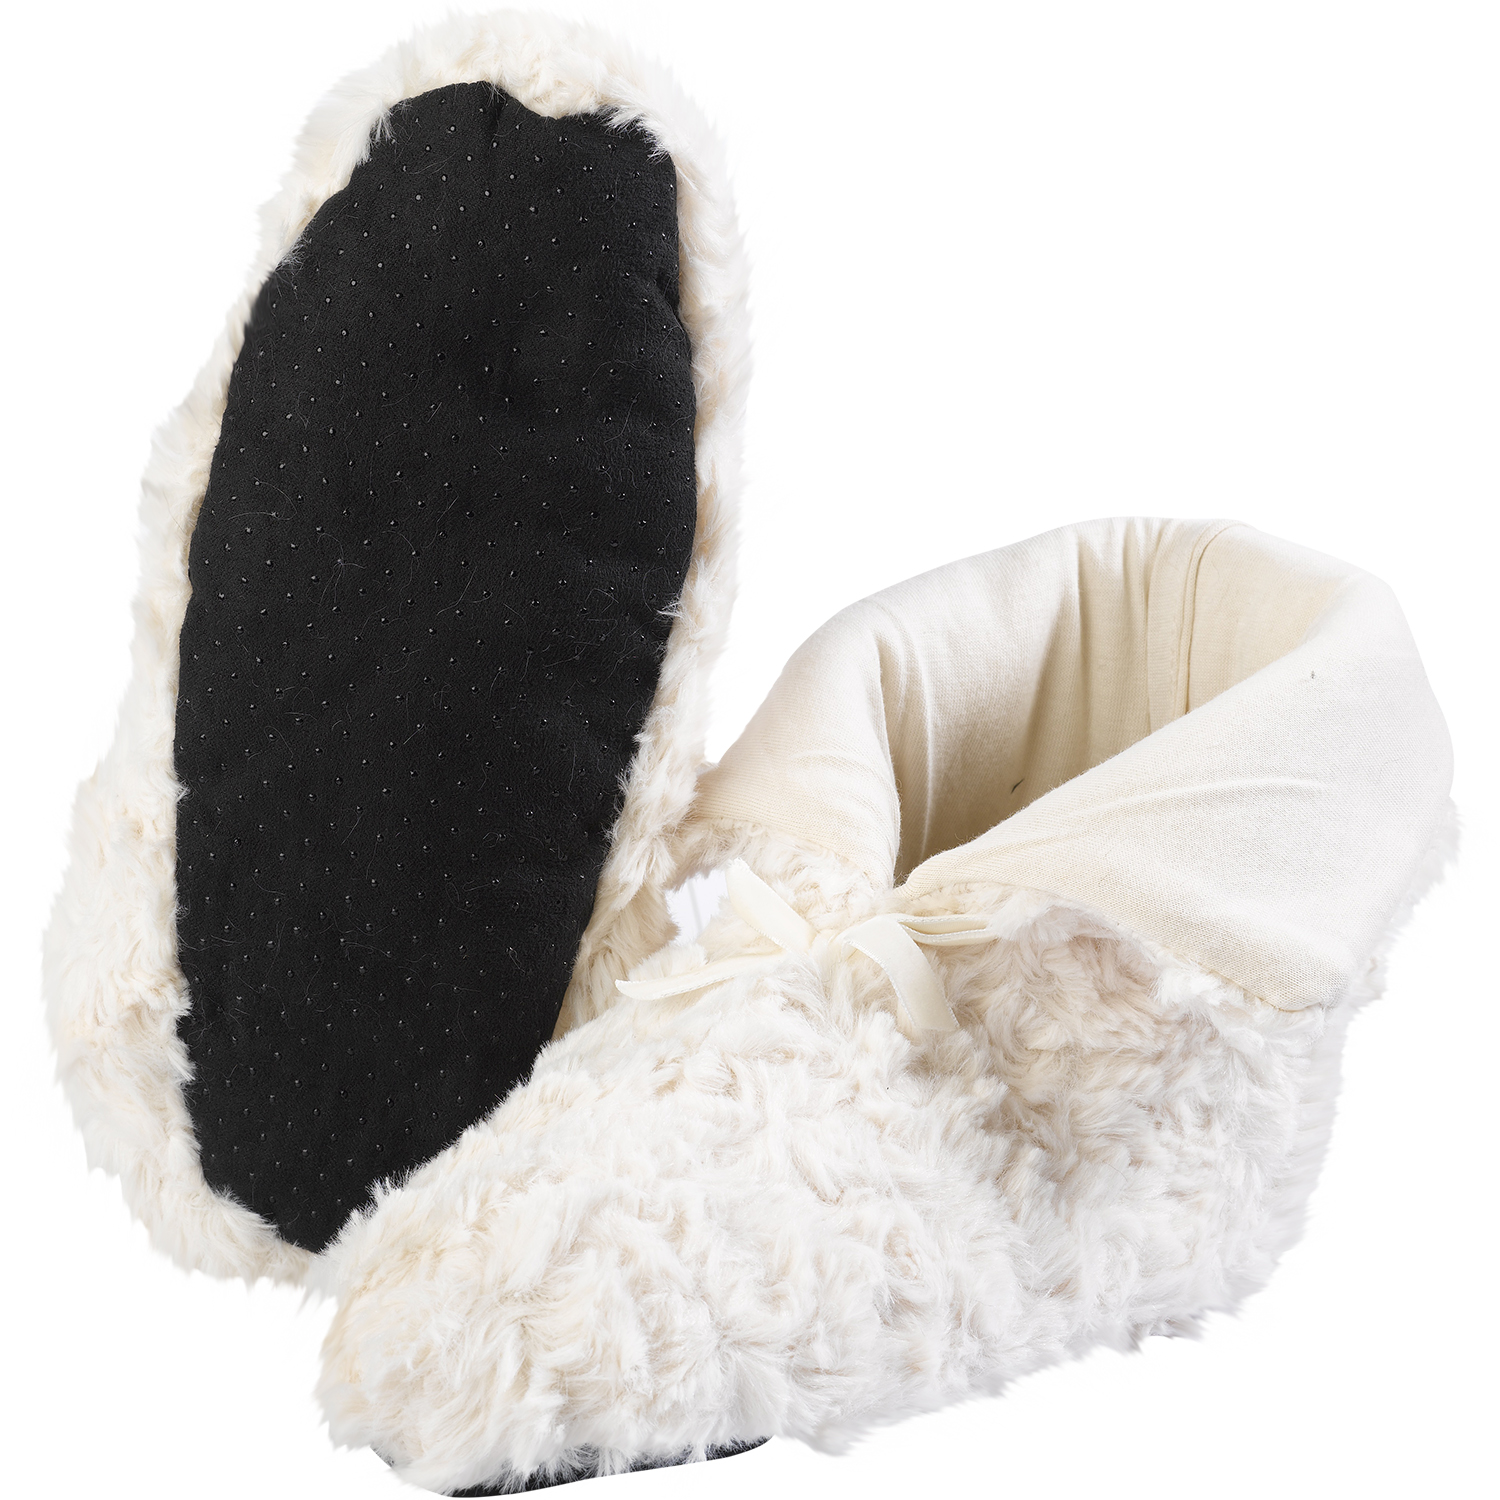 You searched for: faux fur slippers! Etsy is the home to thousands of handmade, vintage, and one-of-a-kind products and gifts related to your search. No matter what you're looking for or where you are in the world, our global marketplace of sellers can help you find unique and affordable options. Let's get started!